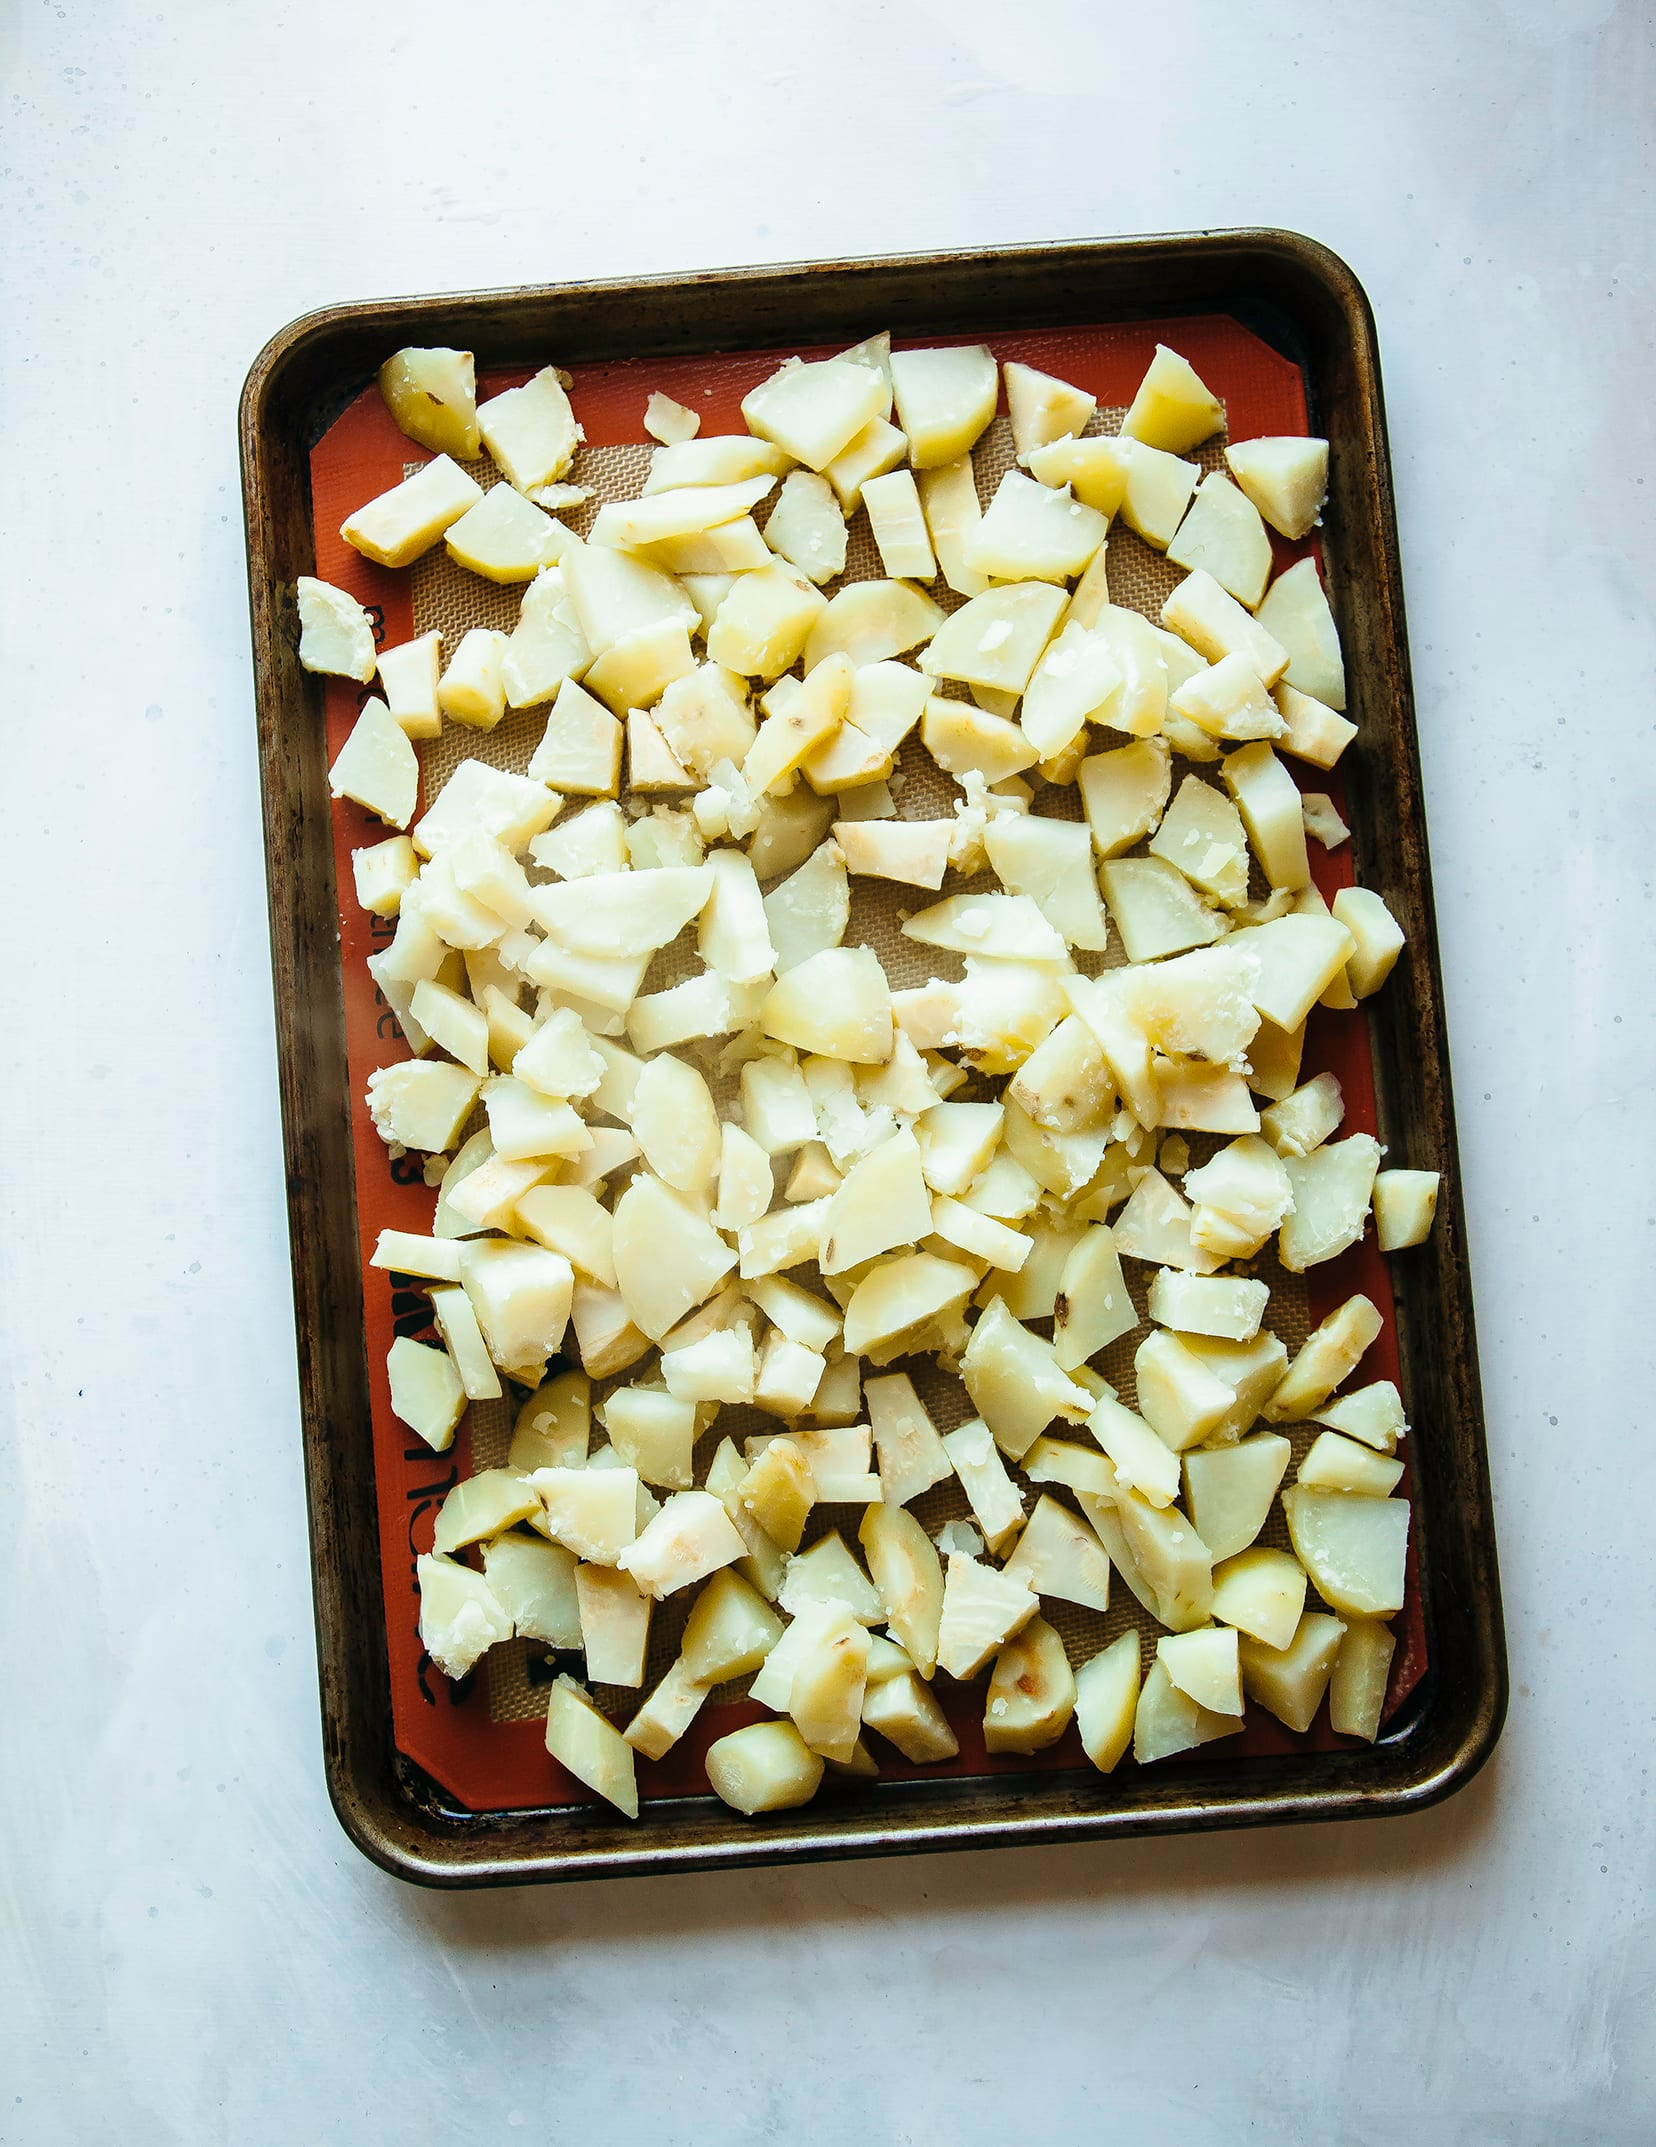 Image shows cooked cubes of root vegetables on a baking sheet.